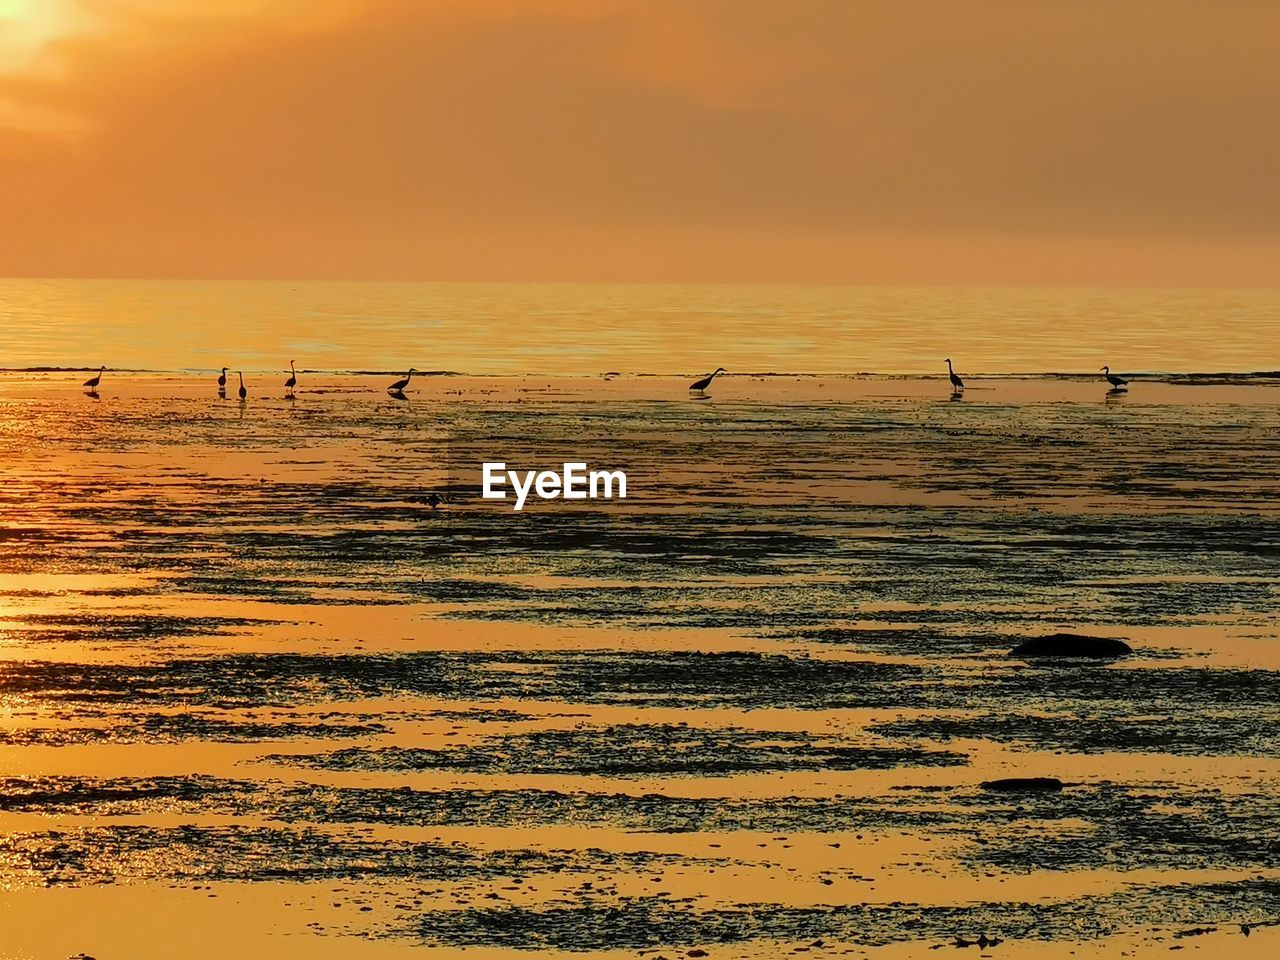 sunset, sky, orange color, beauty in nature, animal themes, water, scenics - nature, animal wildlife, animals in the wild, animal, bird, group of animals, vertebrate, tranquil scene, tranquility, sea, land, nature, large group of animals, no people, horizon over water, outdoors, flock of birds